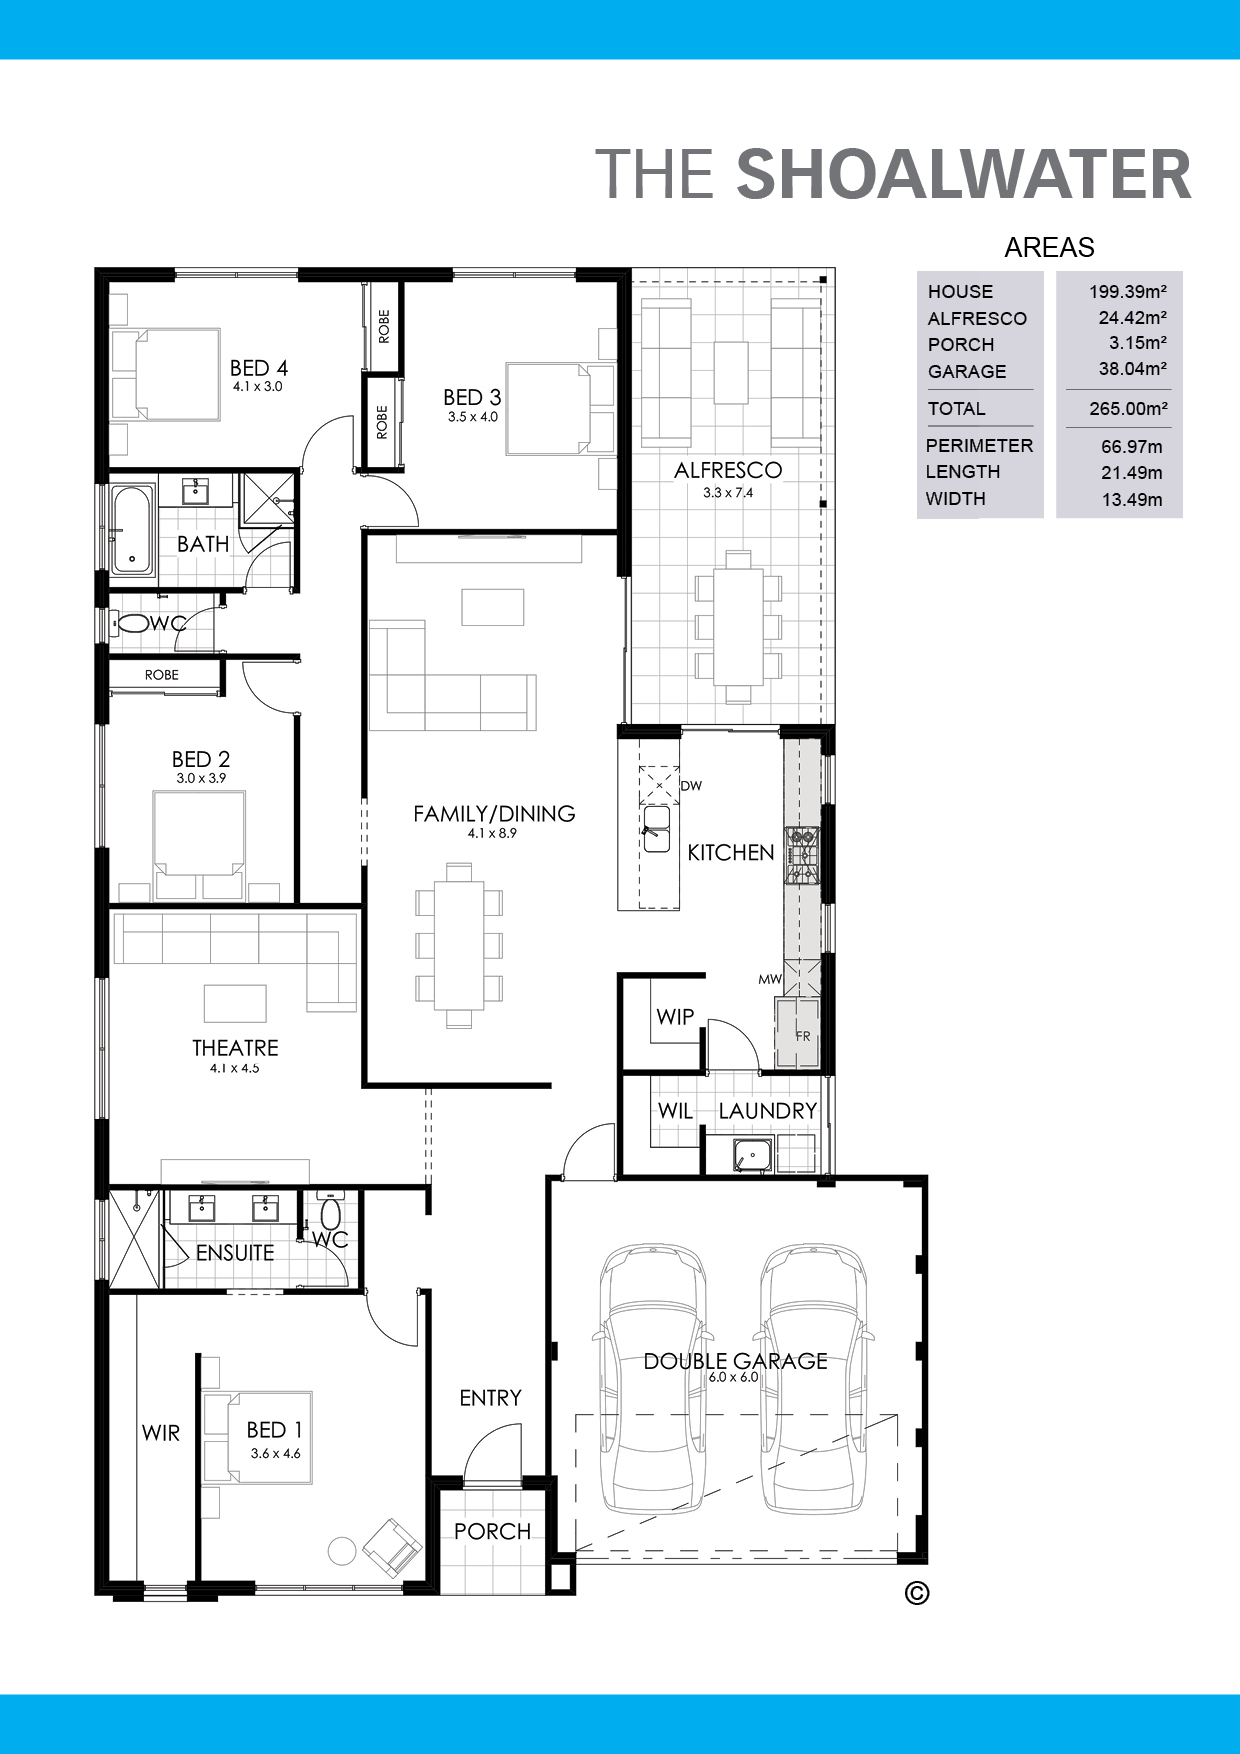 The Shoalwater Floorplan